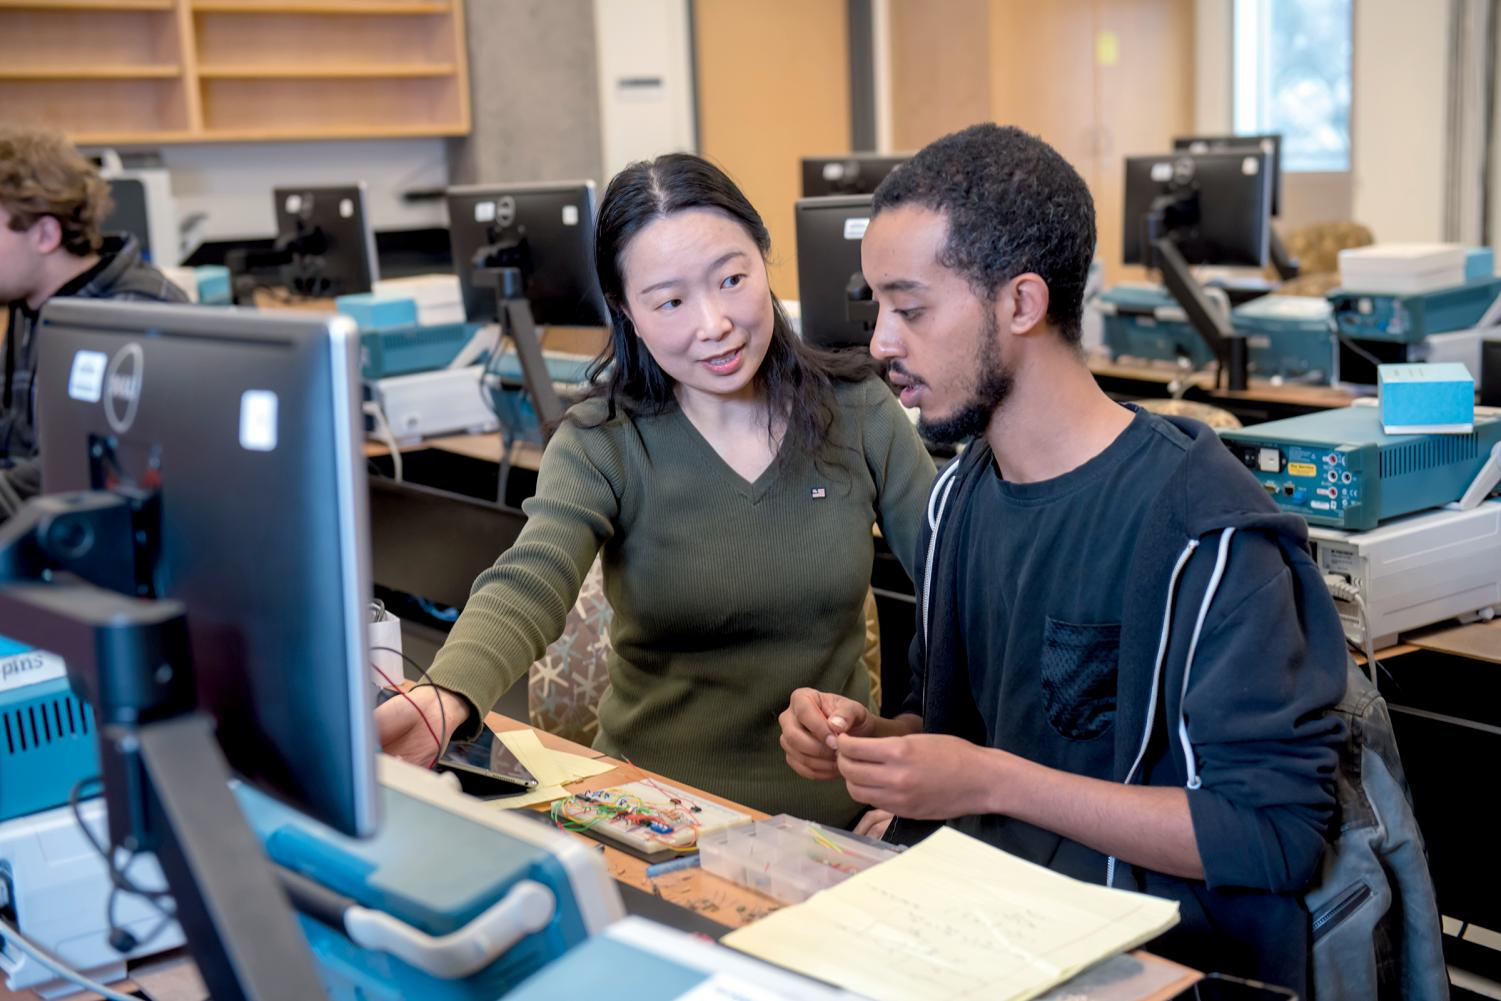 Dr.+Lan+Xiang+teaches+Electrical+Engineering+at+Montgomery+College